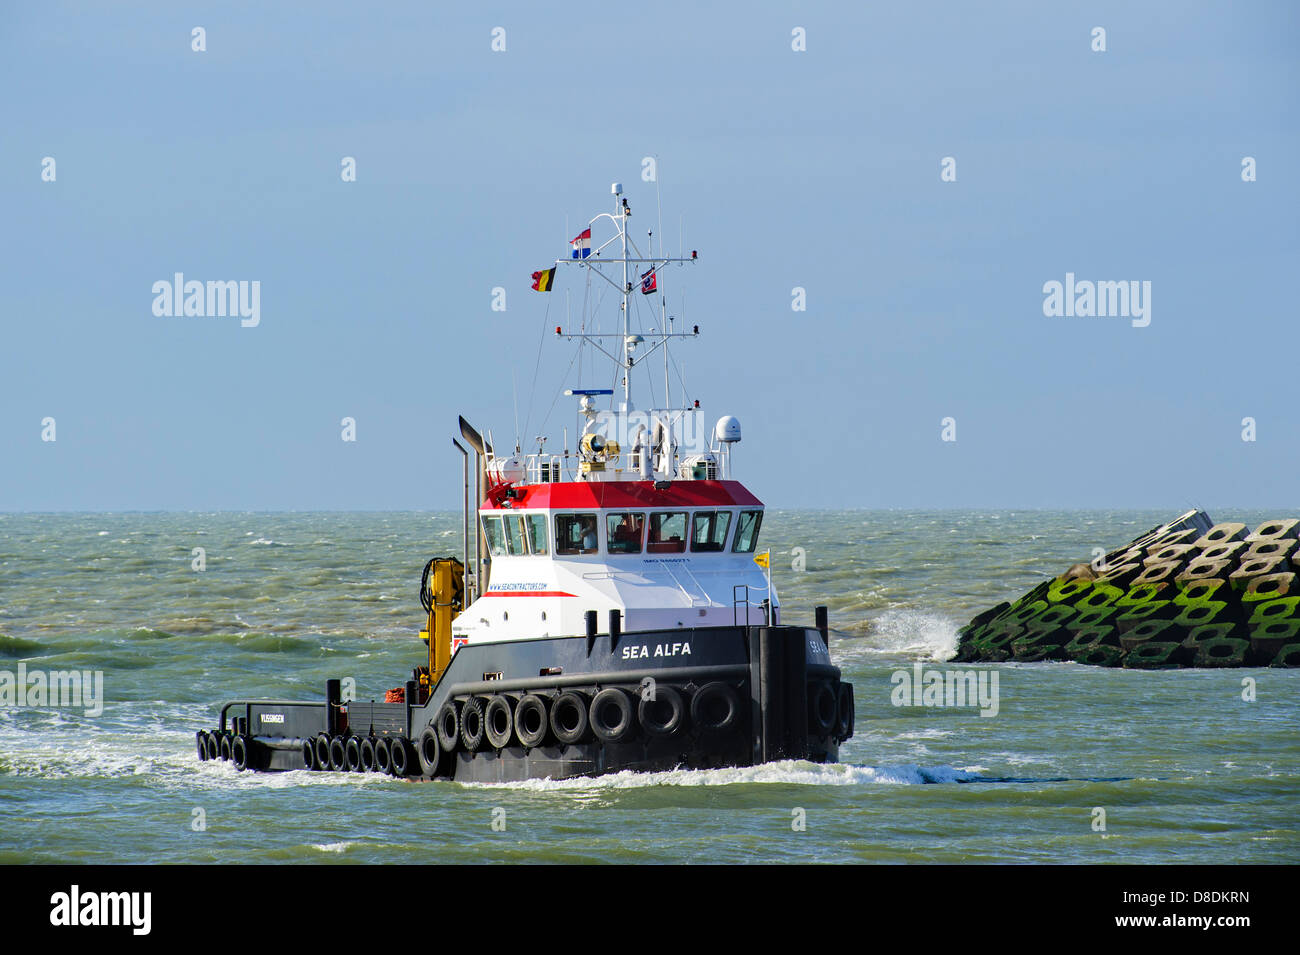 Tugboat Sea Alfa entering port on the North Sea, Netherlands Stock Photo